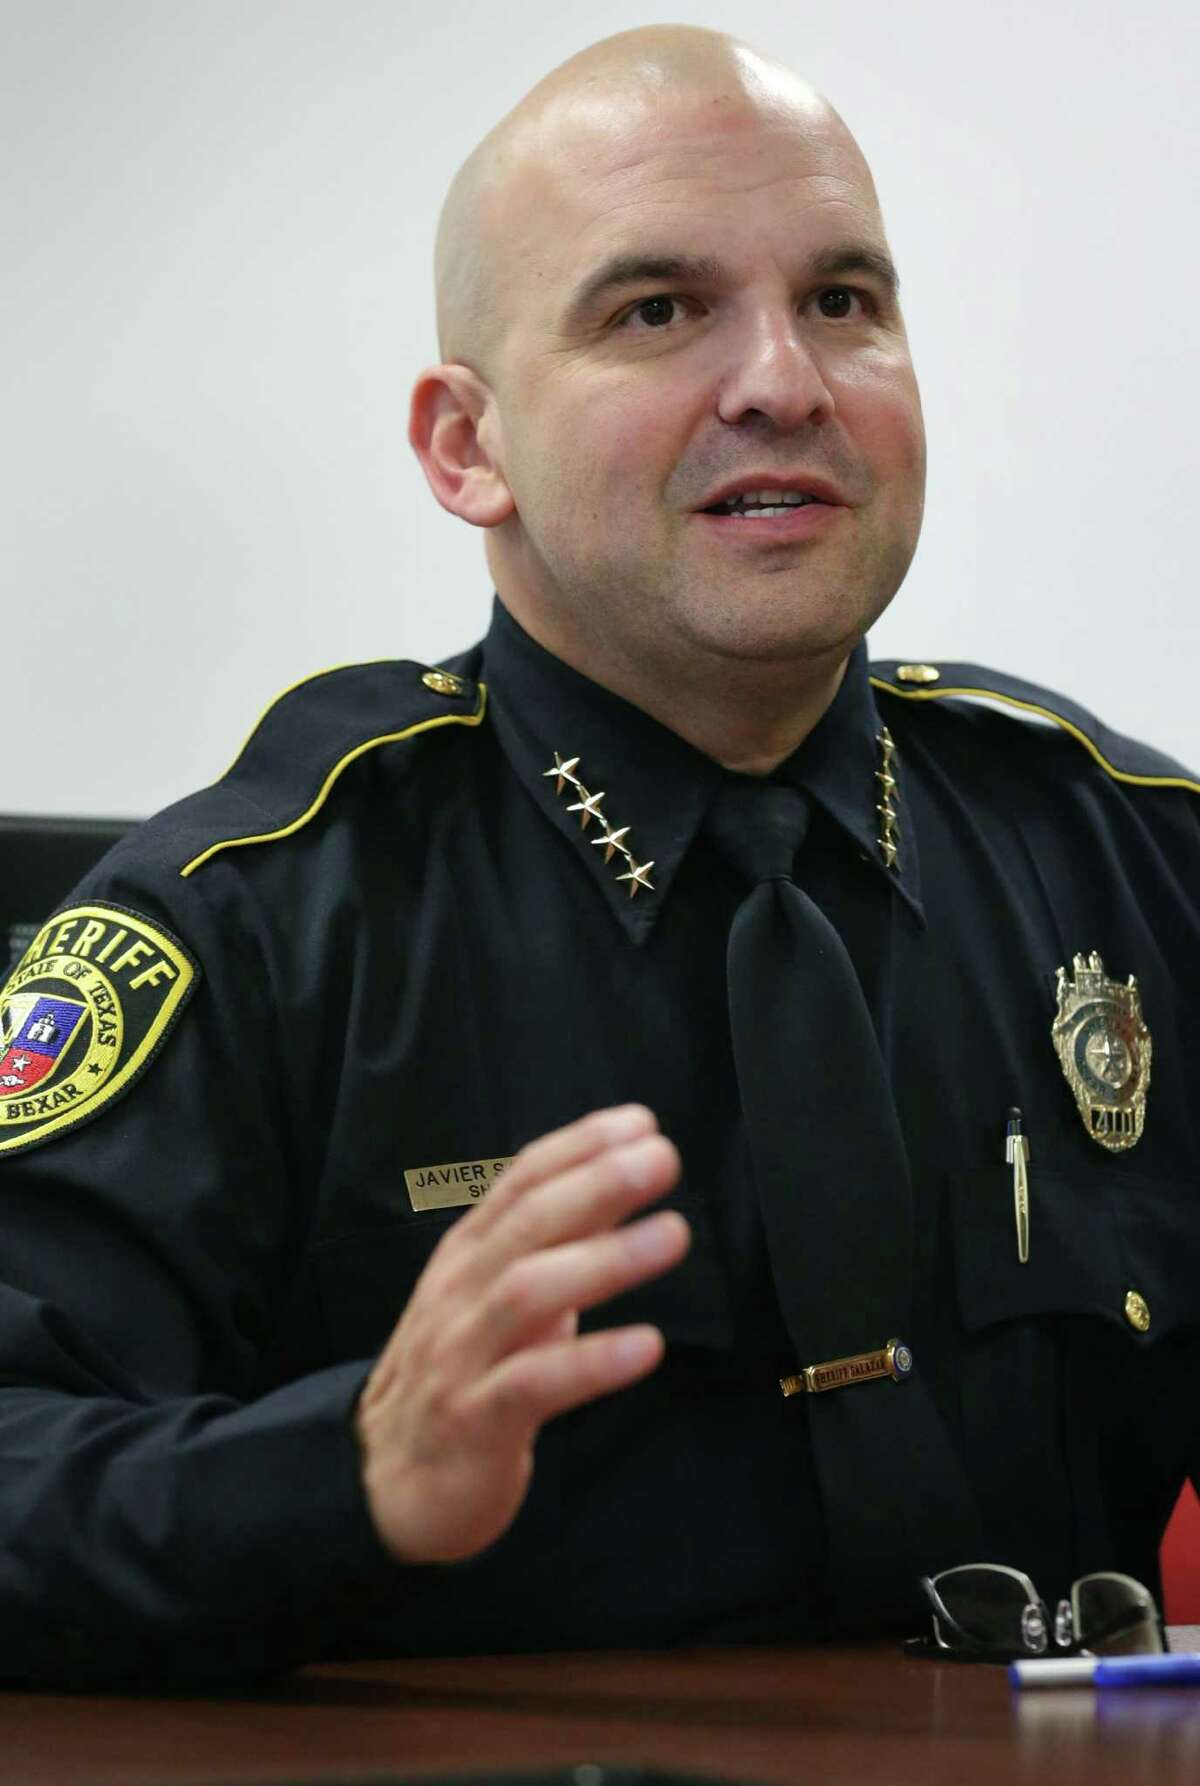 Bexar County Sheriff Javier Salazar said he's excited that the national TV exposure will boost officer recruitment as well as highlight his officers on duty.